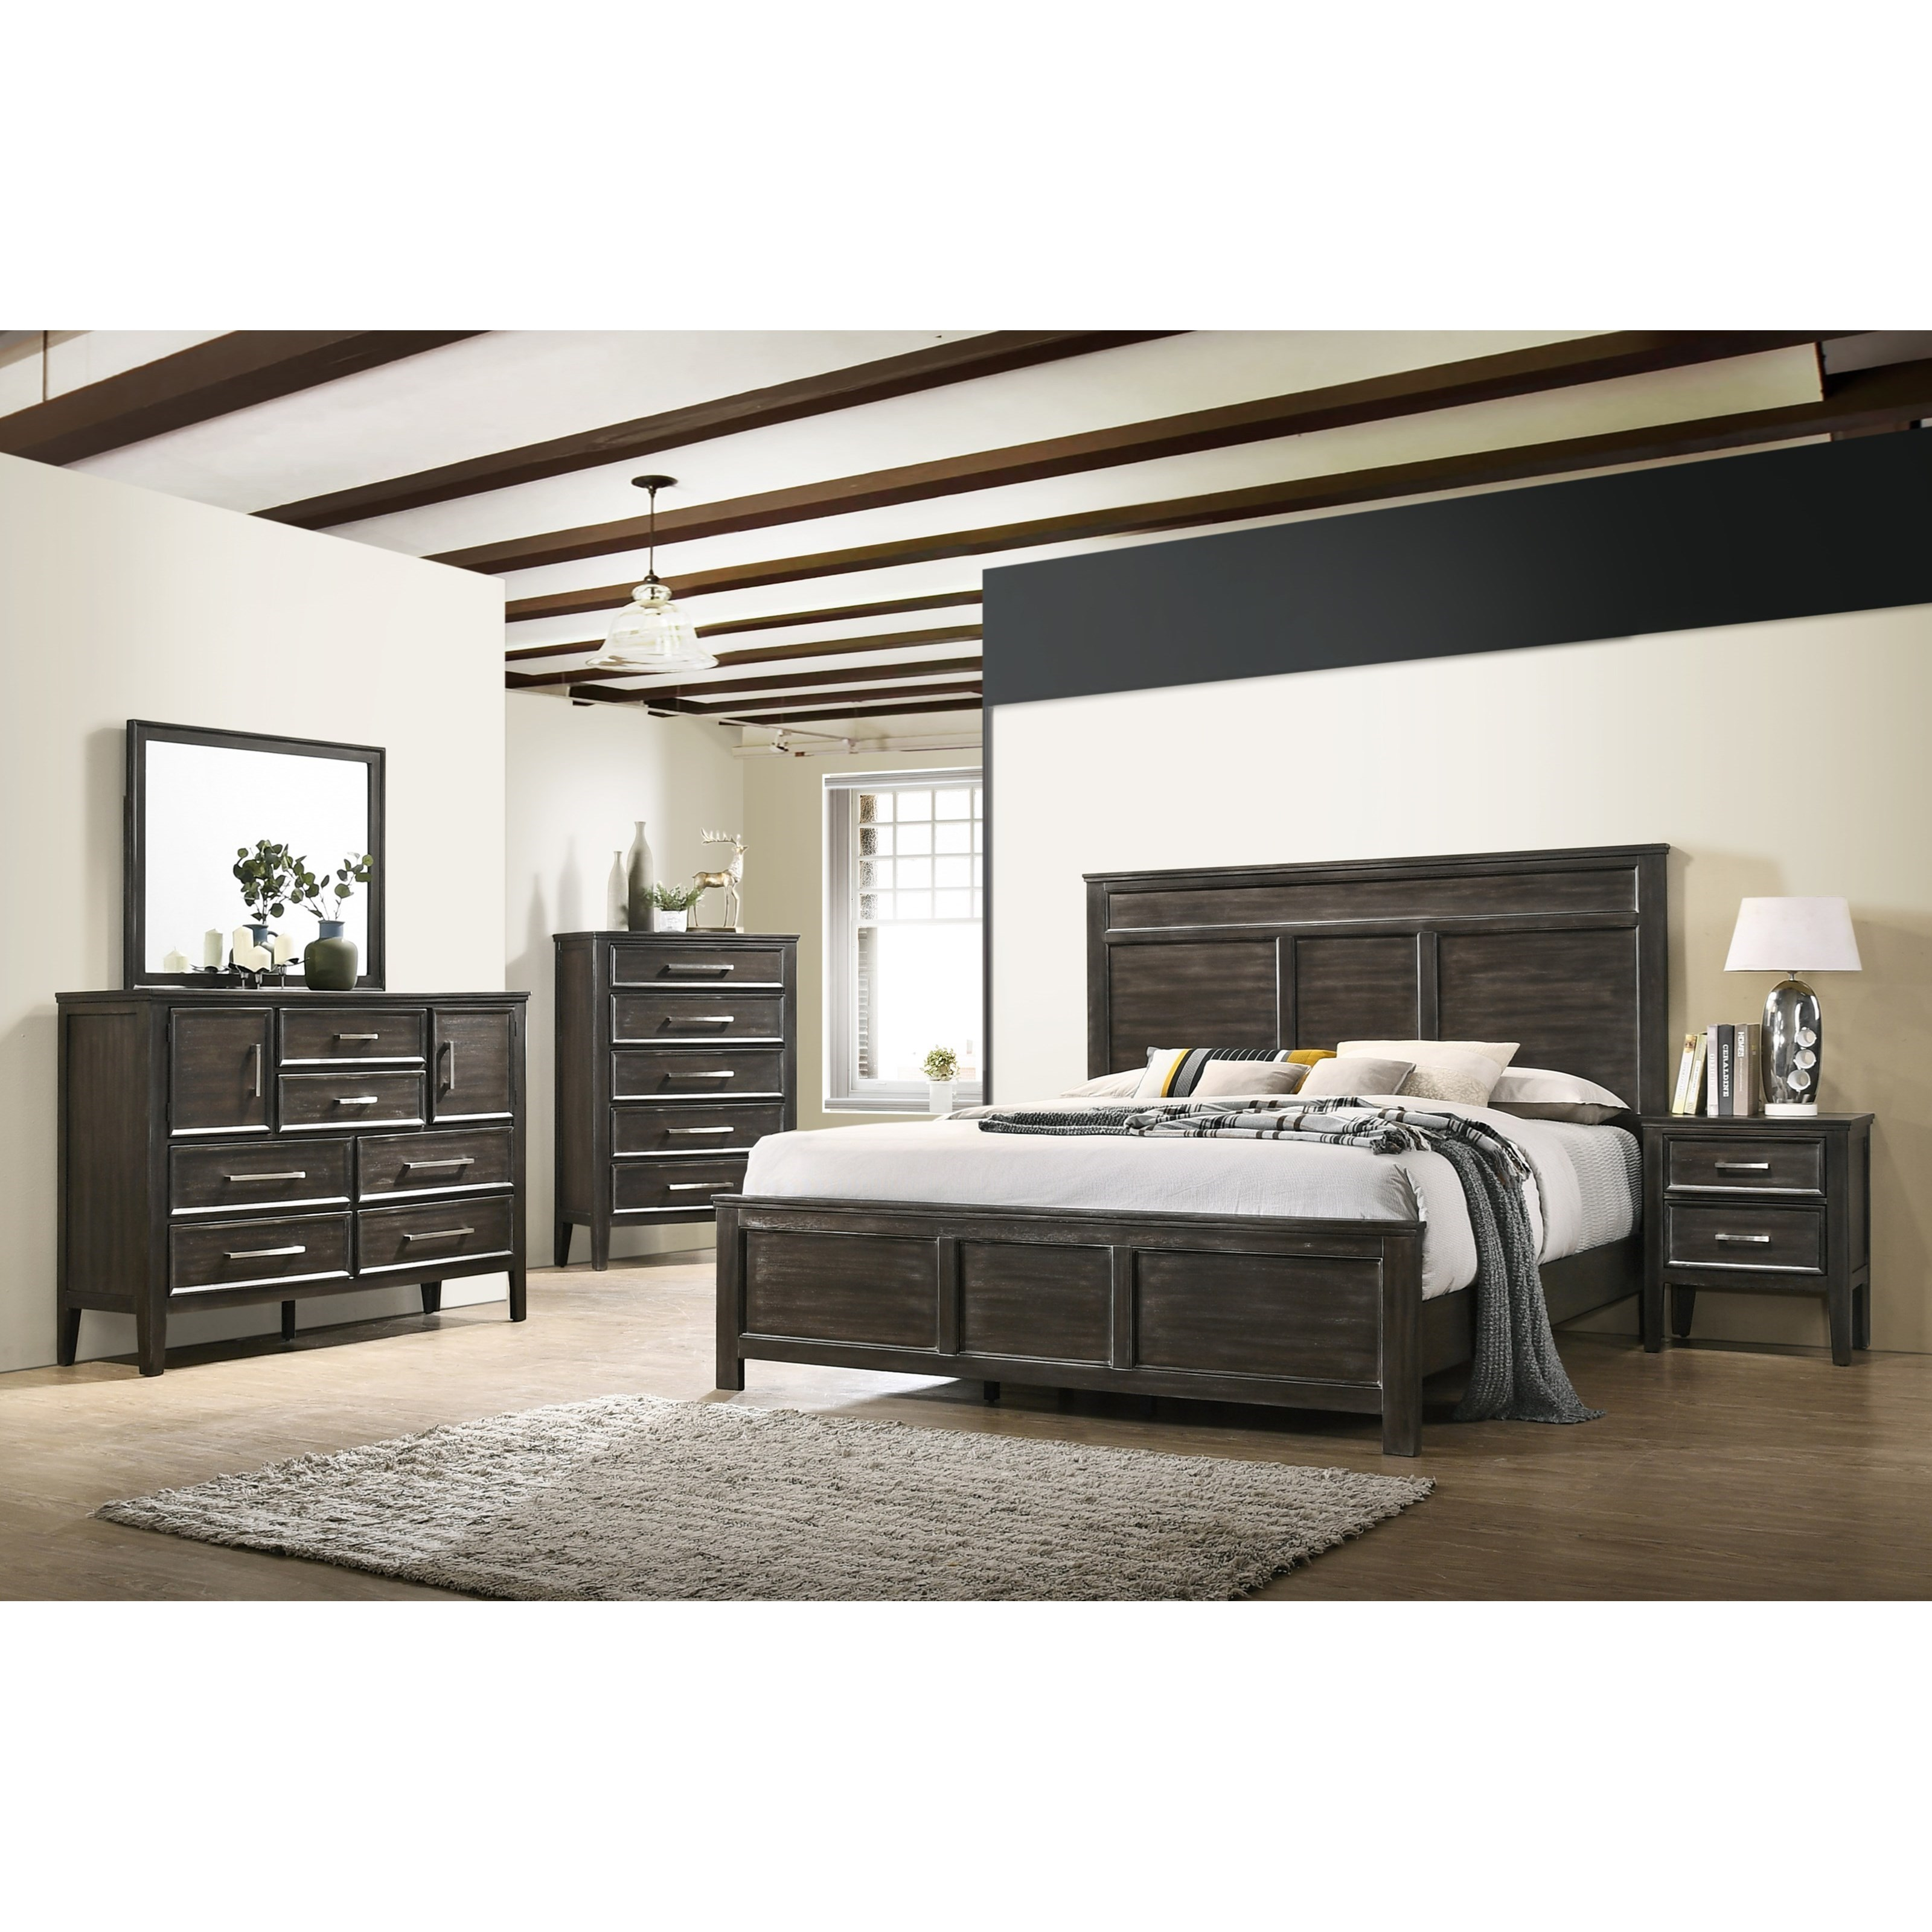 Andover Queen Bedroom Group by New Classic at H.L. Stephens